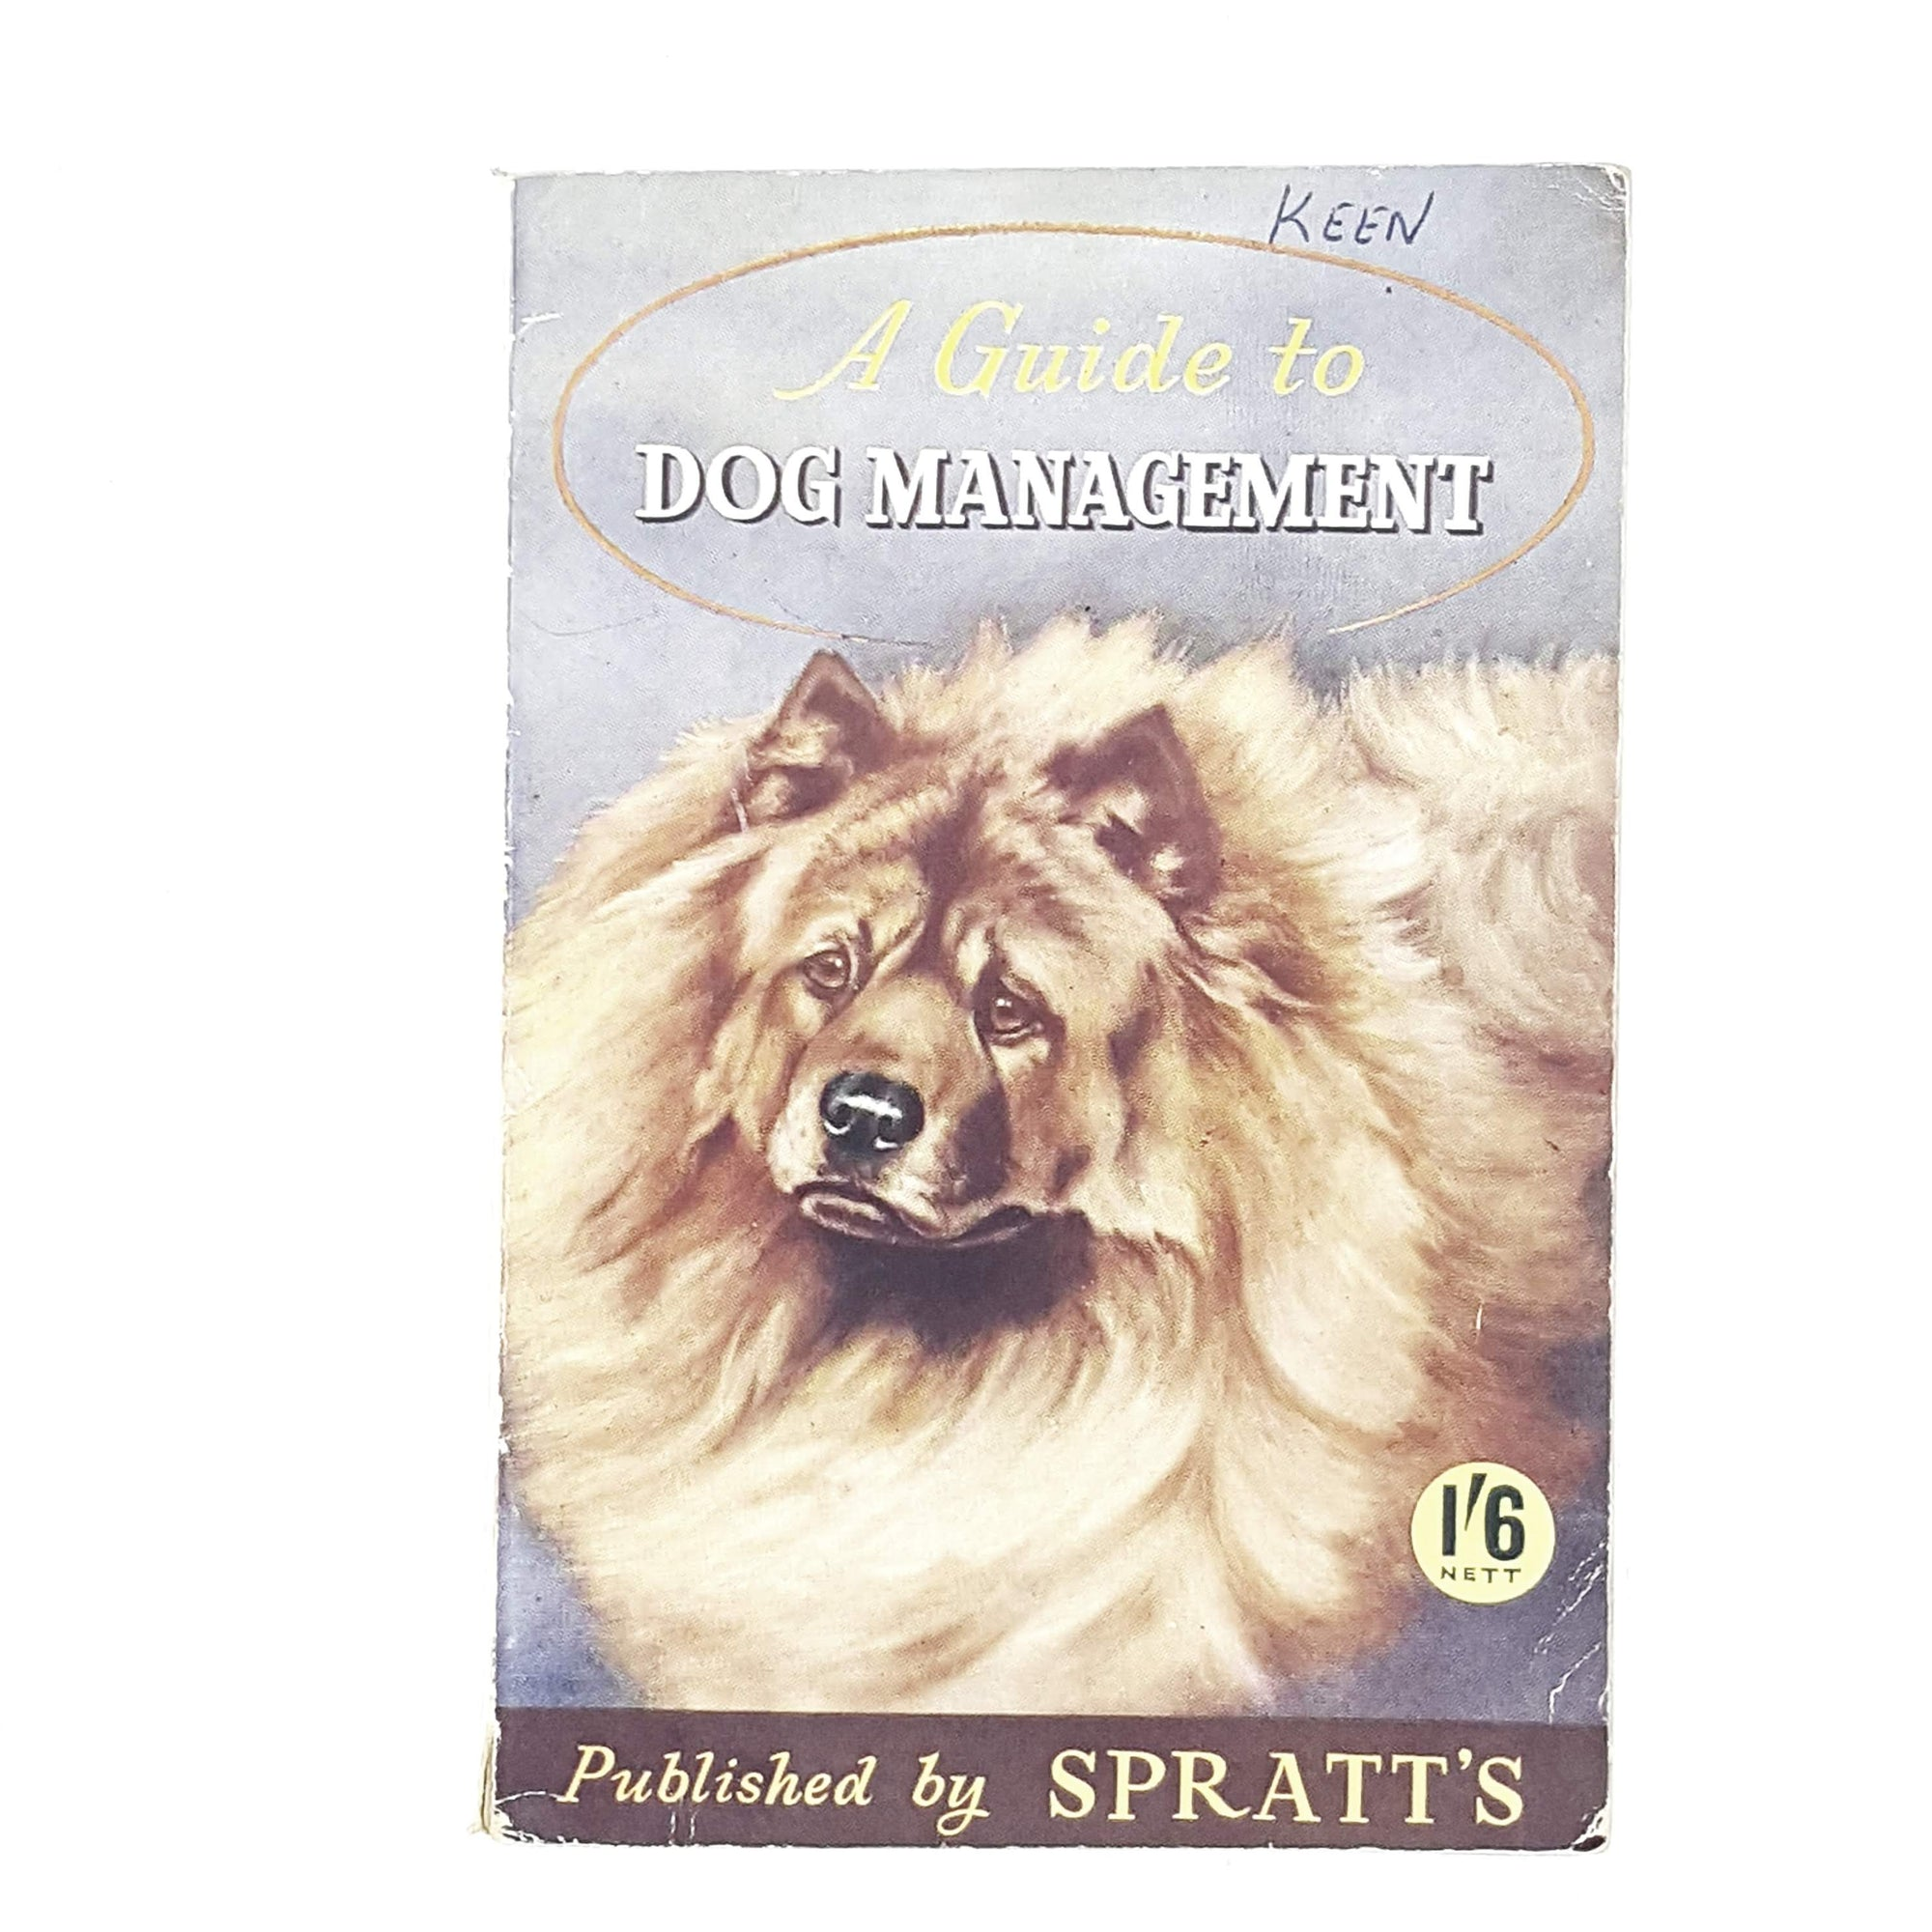 A Guide to Dog Management by A. Croxton Smith